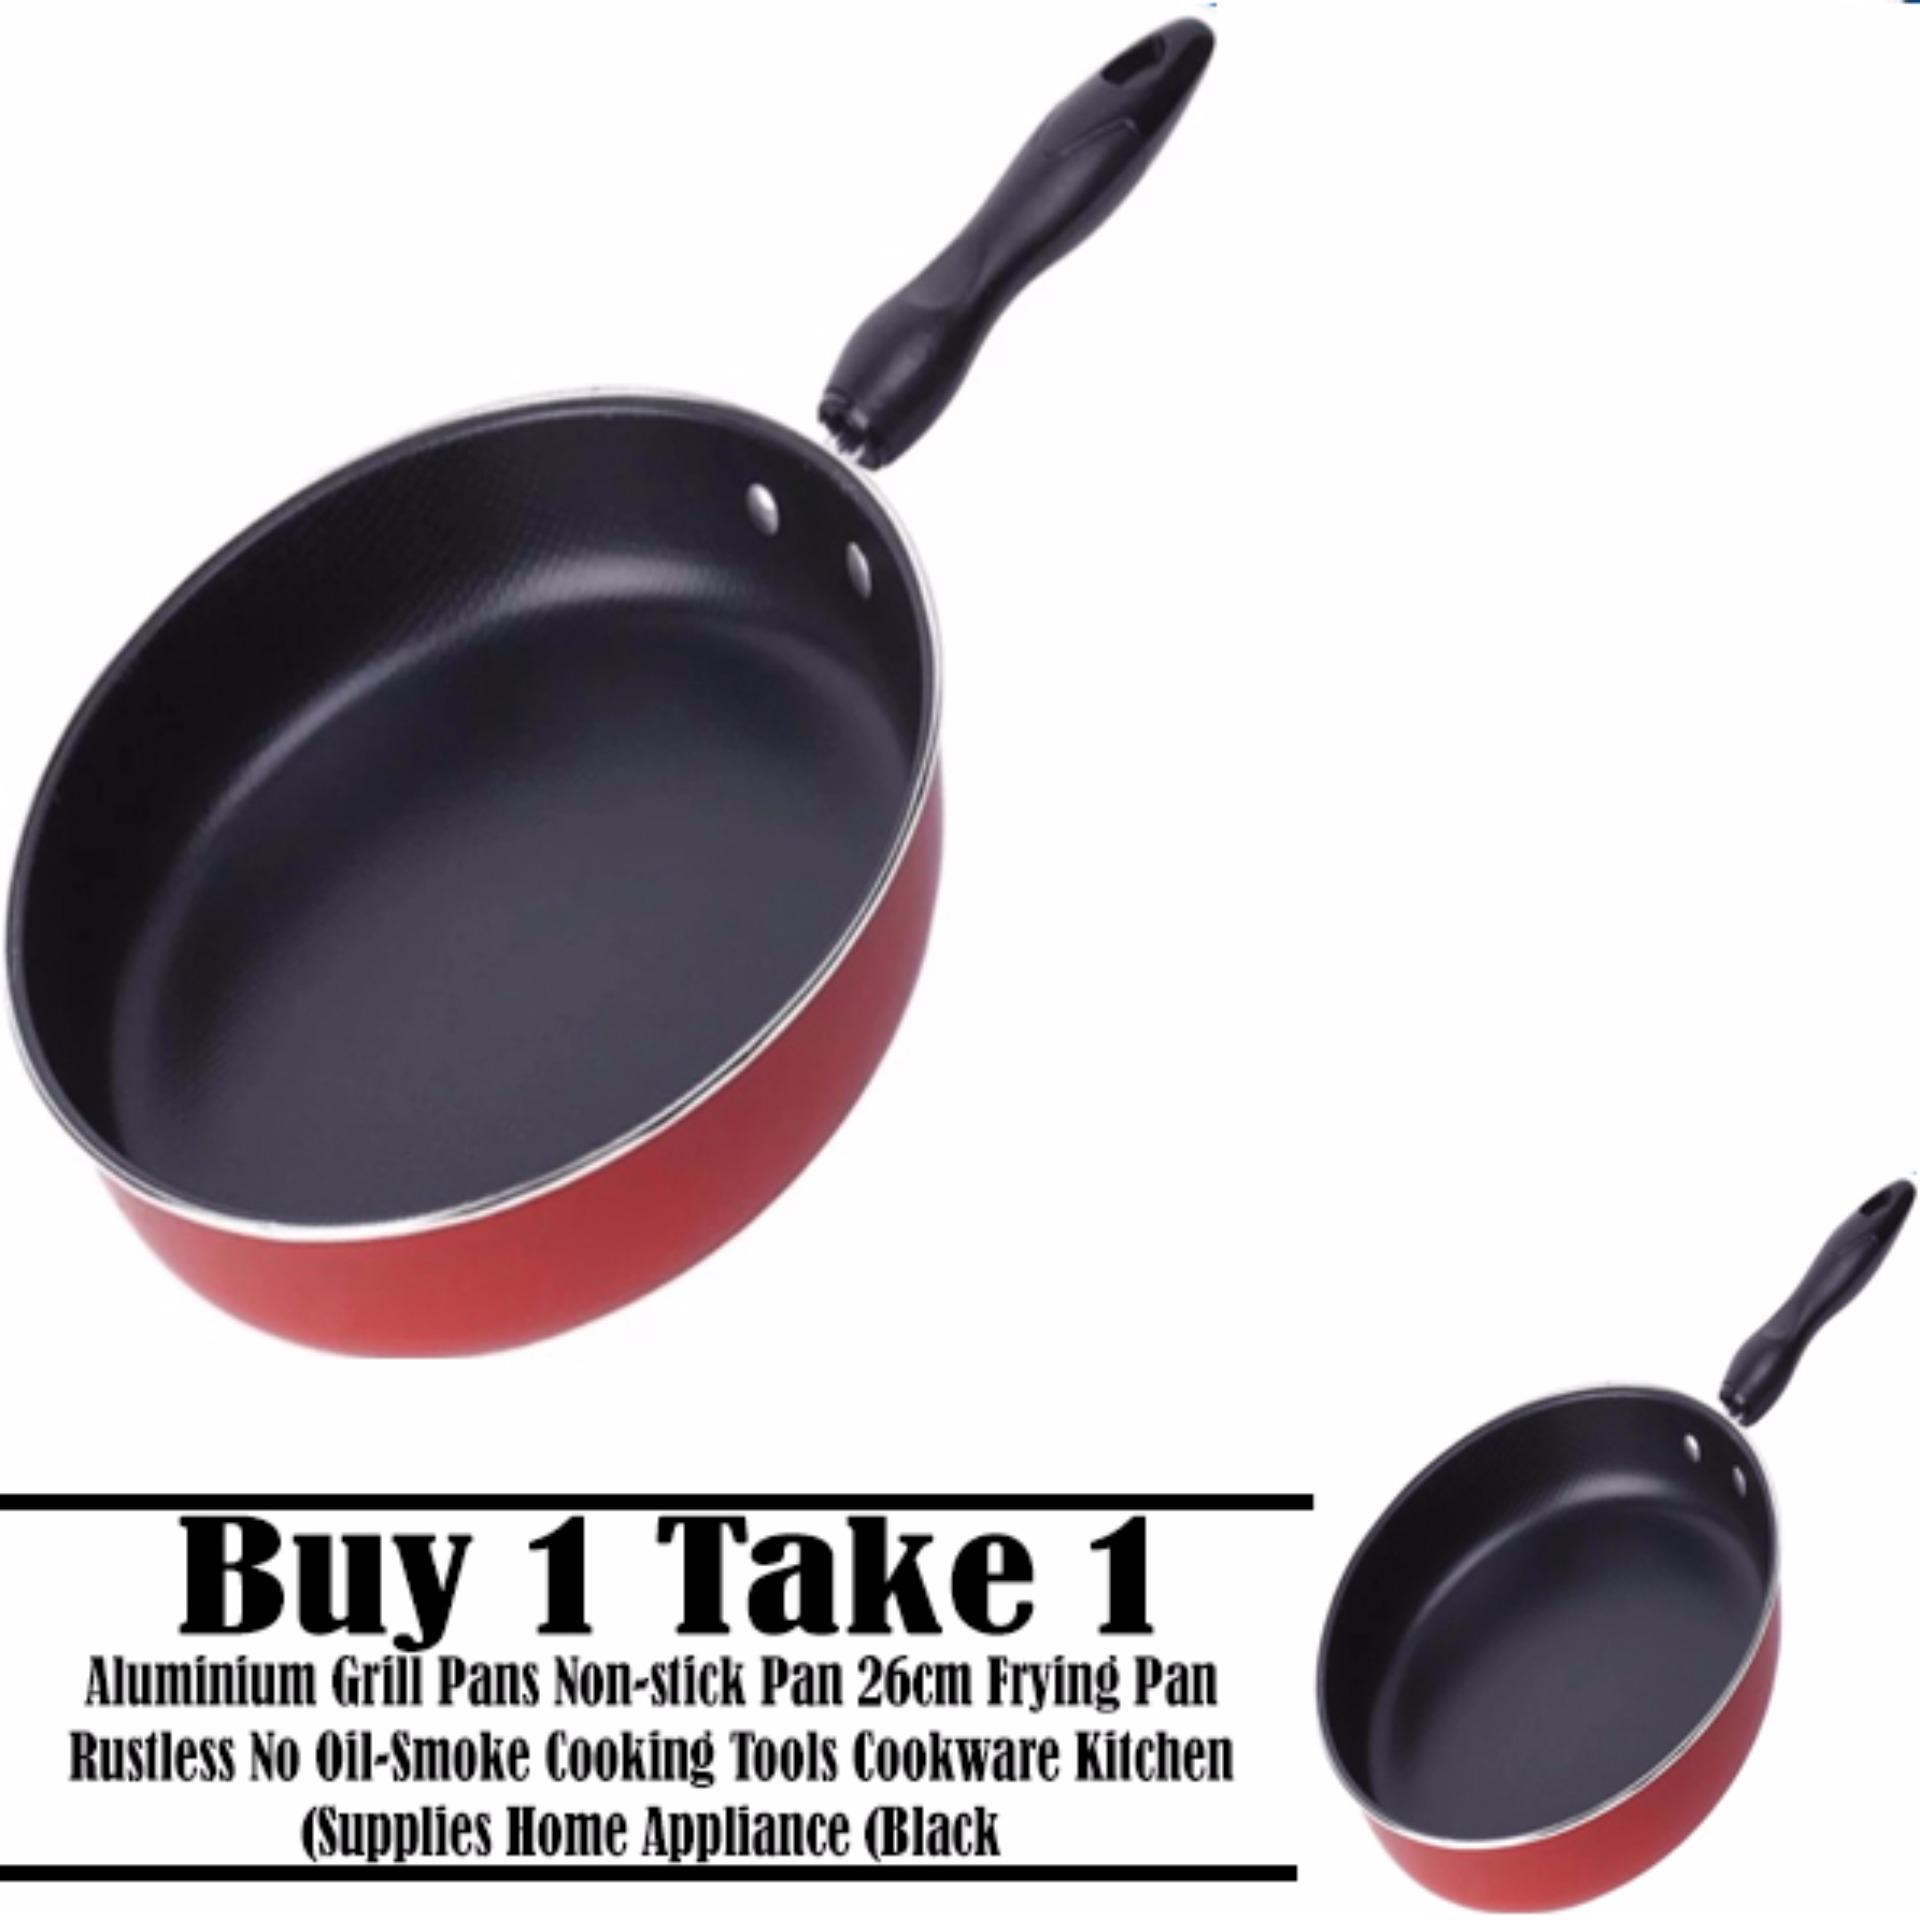 (Buy 1 take 1) Aluminium Grill Pans Non-stick Pan 26cm Frying PanRustless No Oil-Smoke Cooking Tools Cookware Kitchen Supplies HomeAppliance (Black)